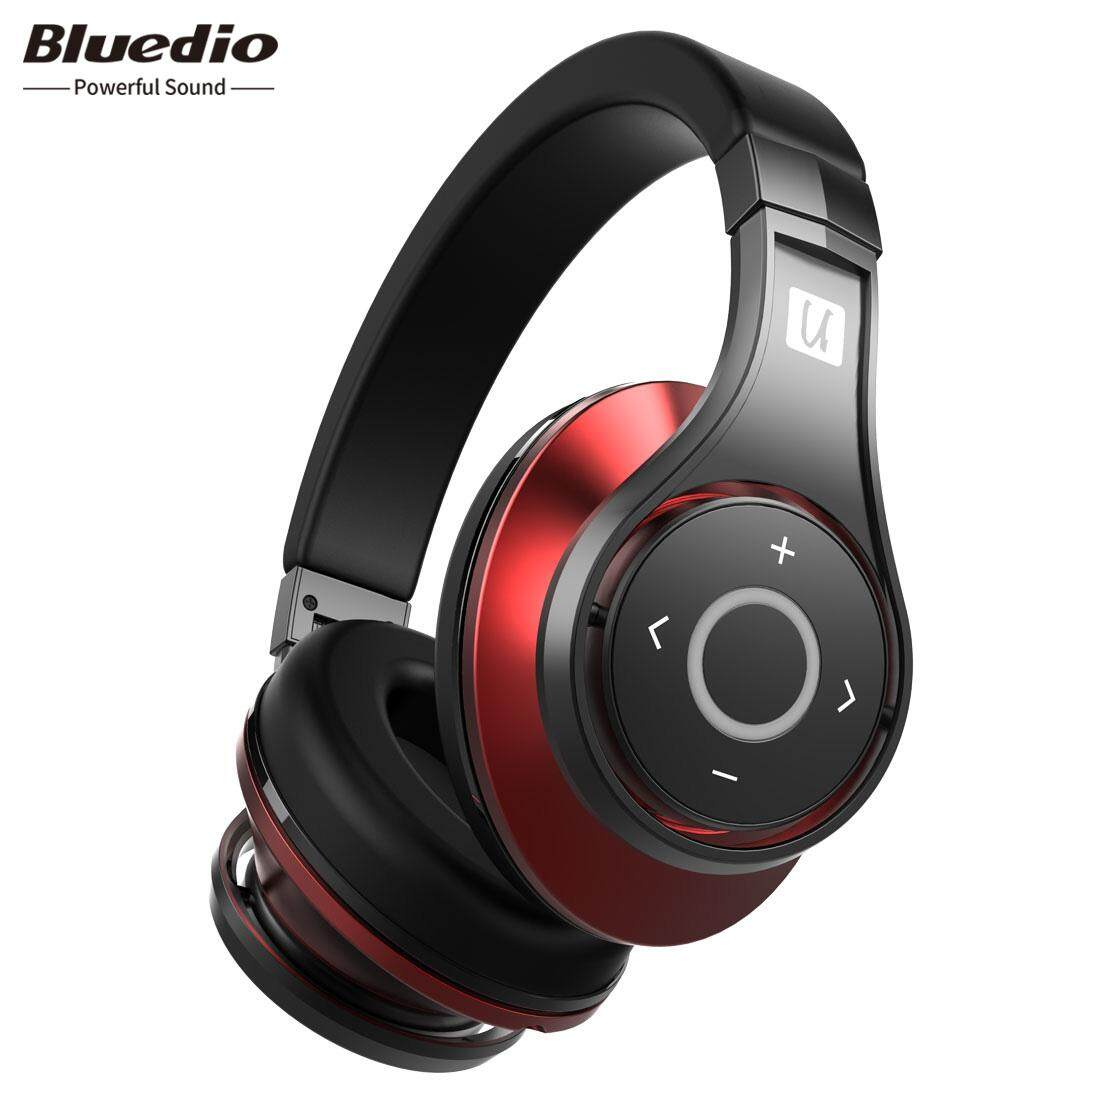 Bluedio UFO Headphone Bluetooth Headset Nirkabel 3D Surround 25HRS Bermain dengan MIC (Hitam/Merah